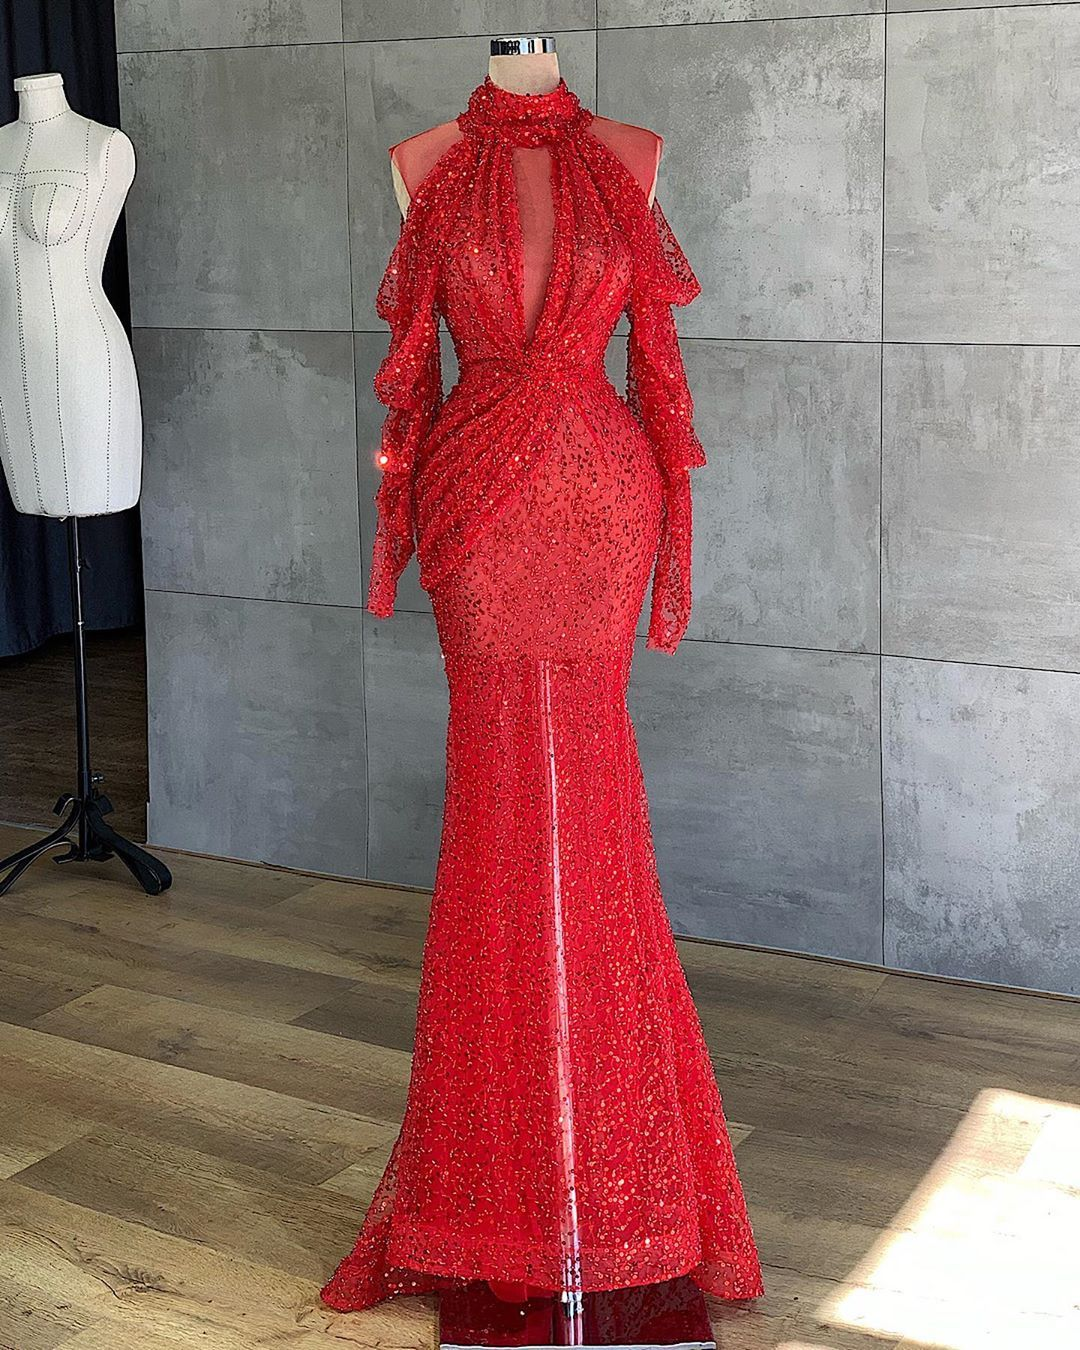 Pin By April On Dresses In 2020 Stunning Dresses Little Red Dress Dresses [ 1350 x 1080 Pixel ]